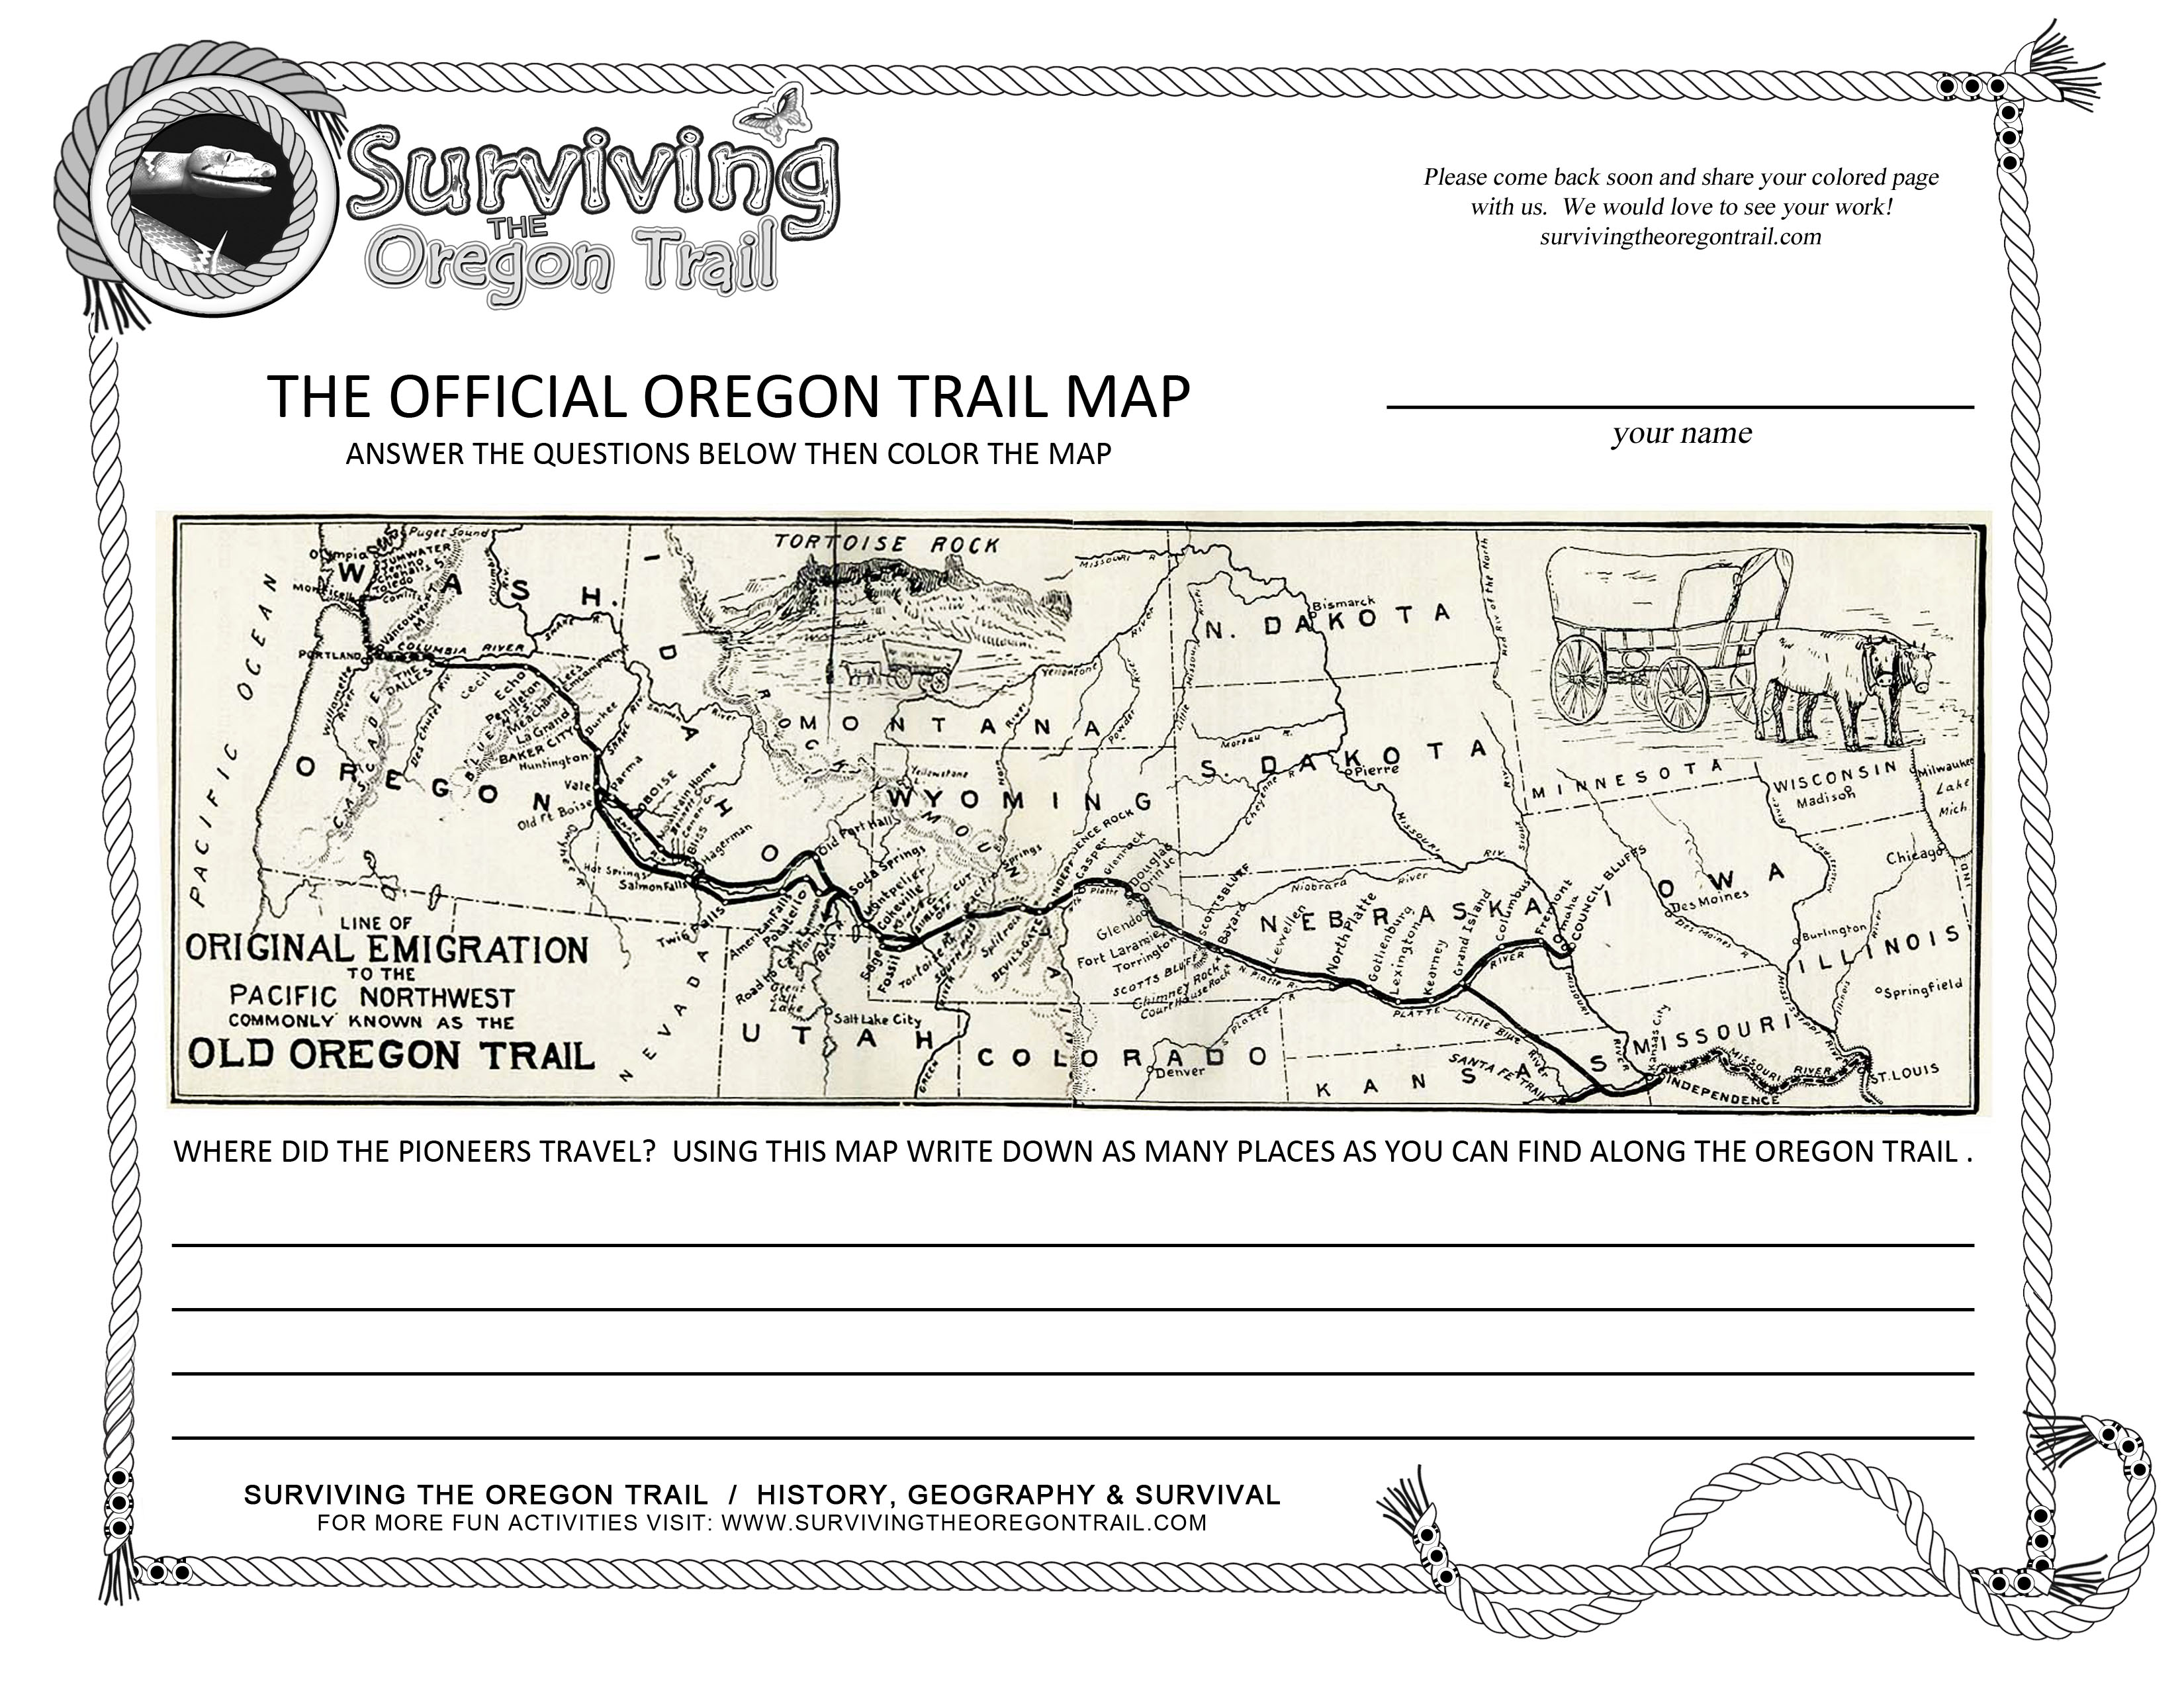 were excited to share with you all our newest printable map using the actual the official the original oregon trail map its the same map the pioneers